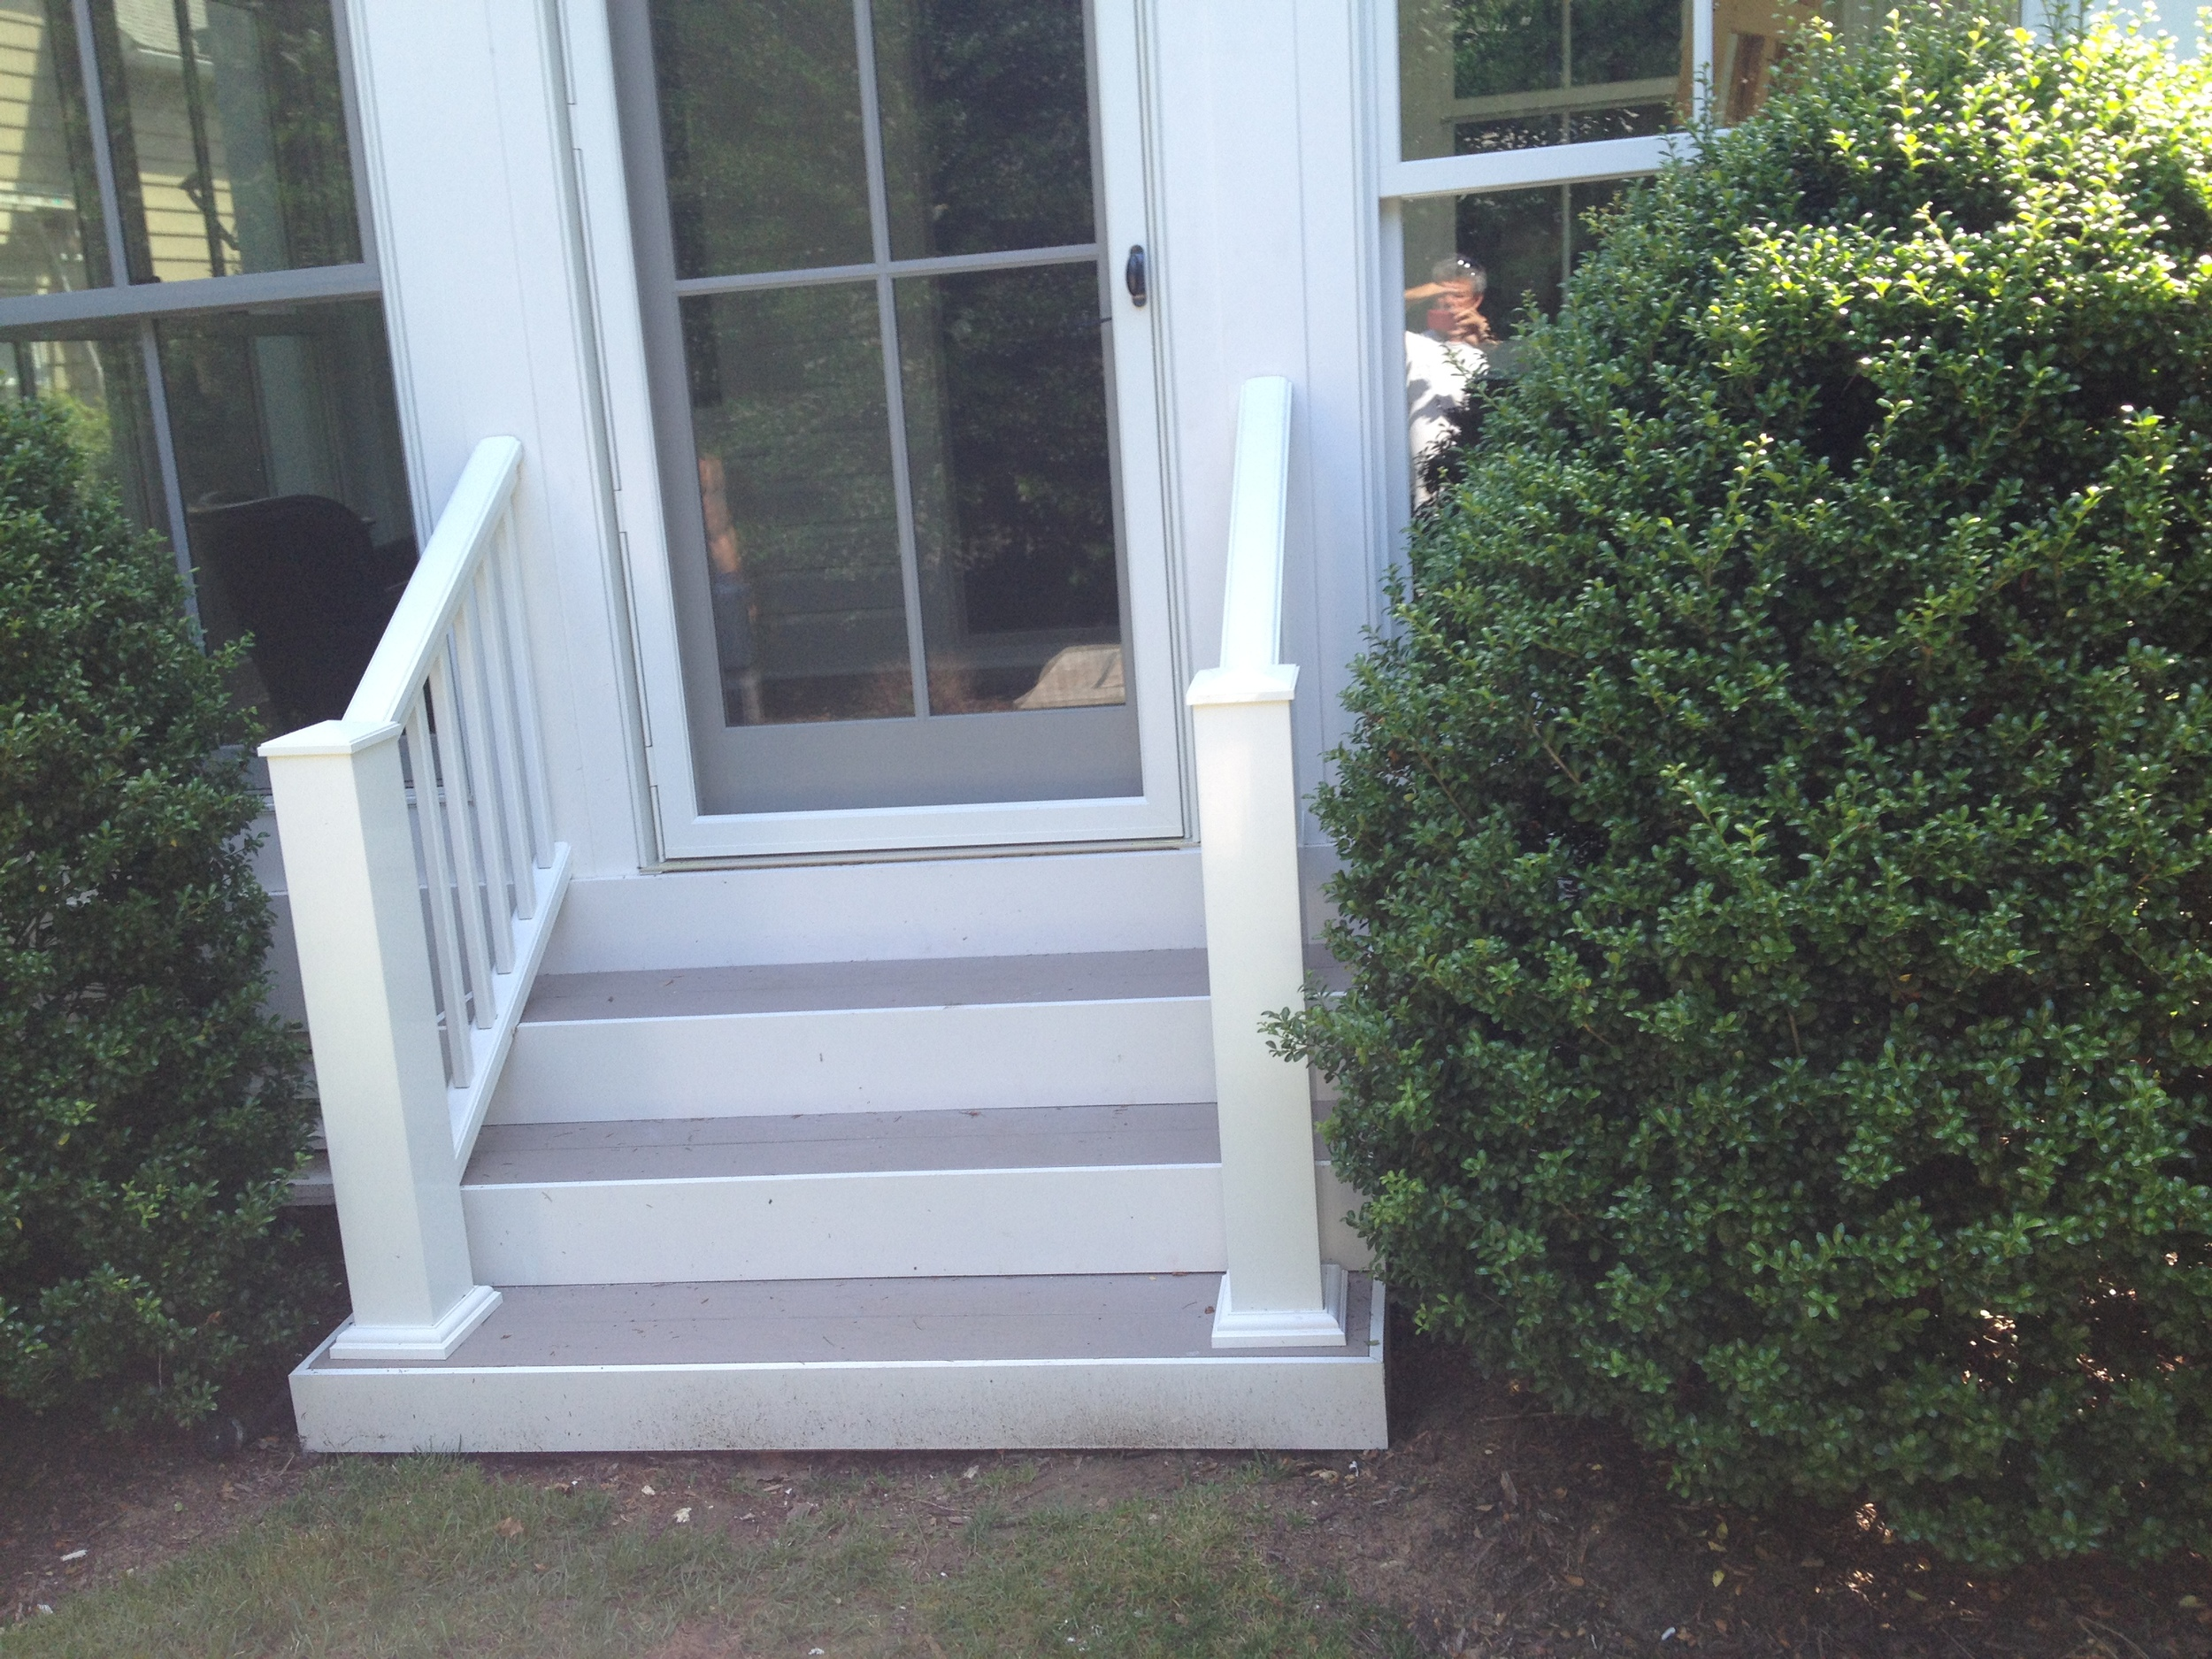 A porch was enclosed using Marvin windows and an over sized door.